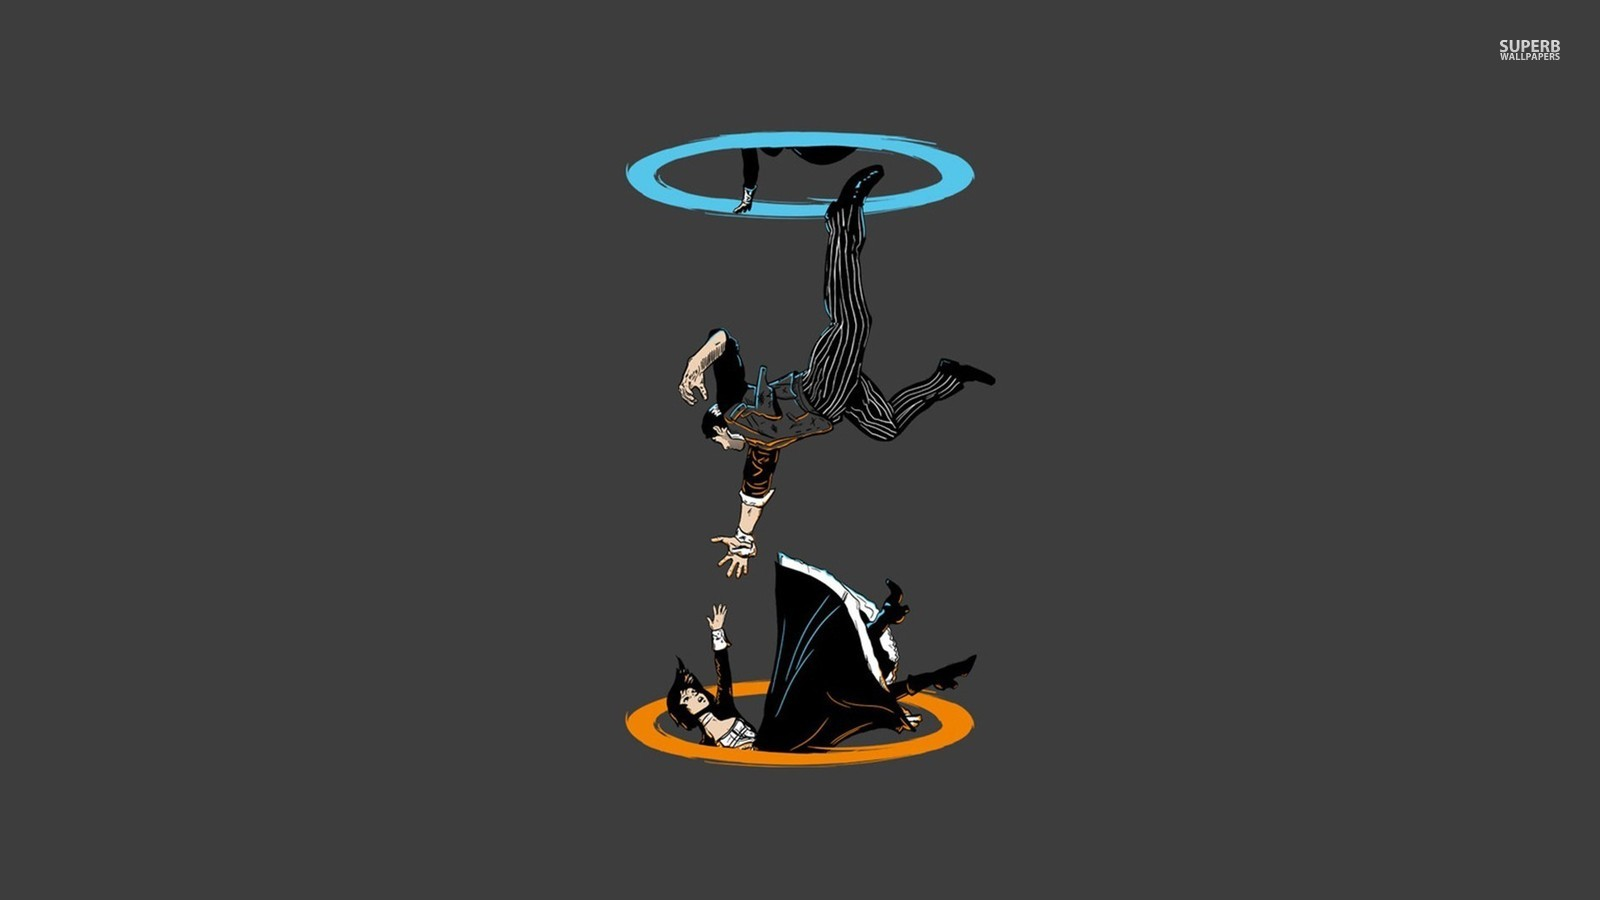 Portal 2 Hd Wallpapers Wallpapers Style